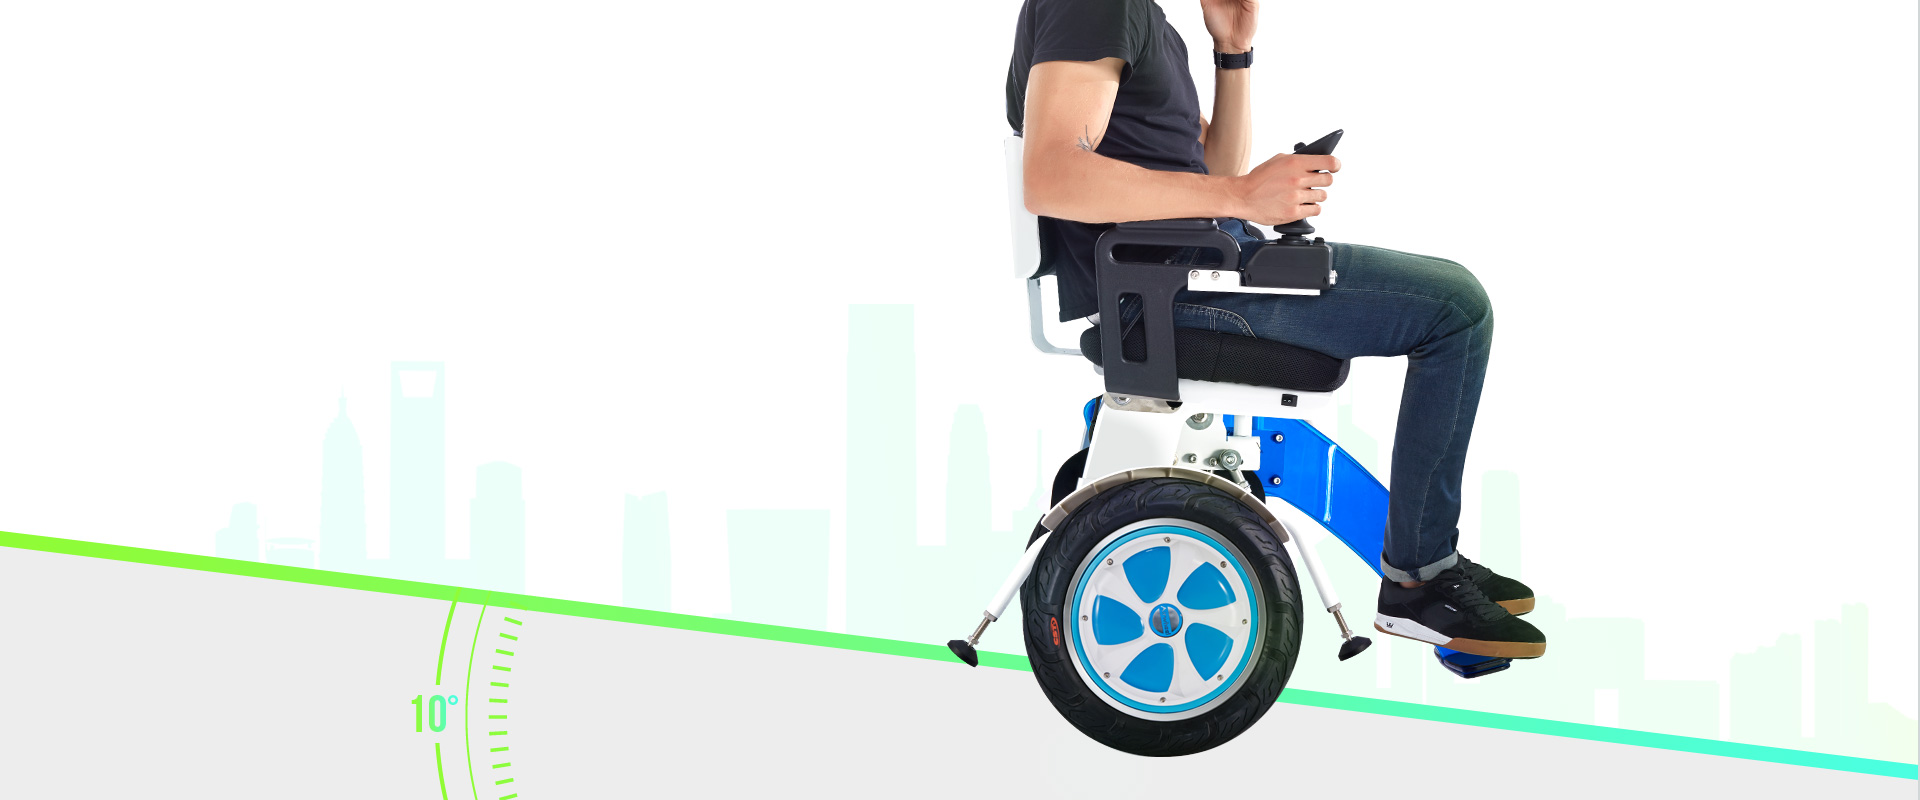 Airwheel A6S Selfbalance wheelchair